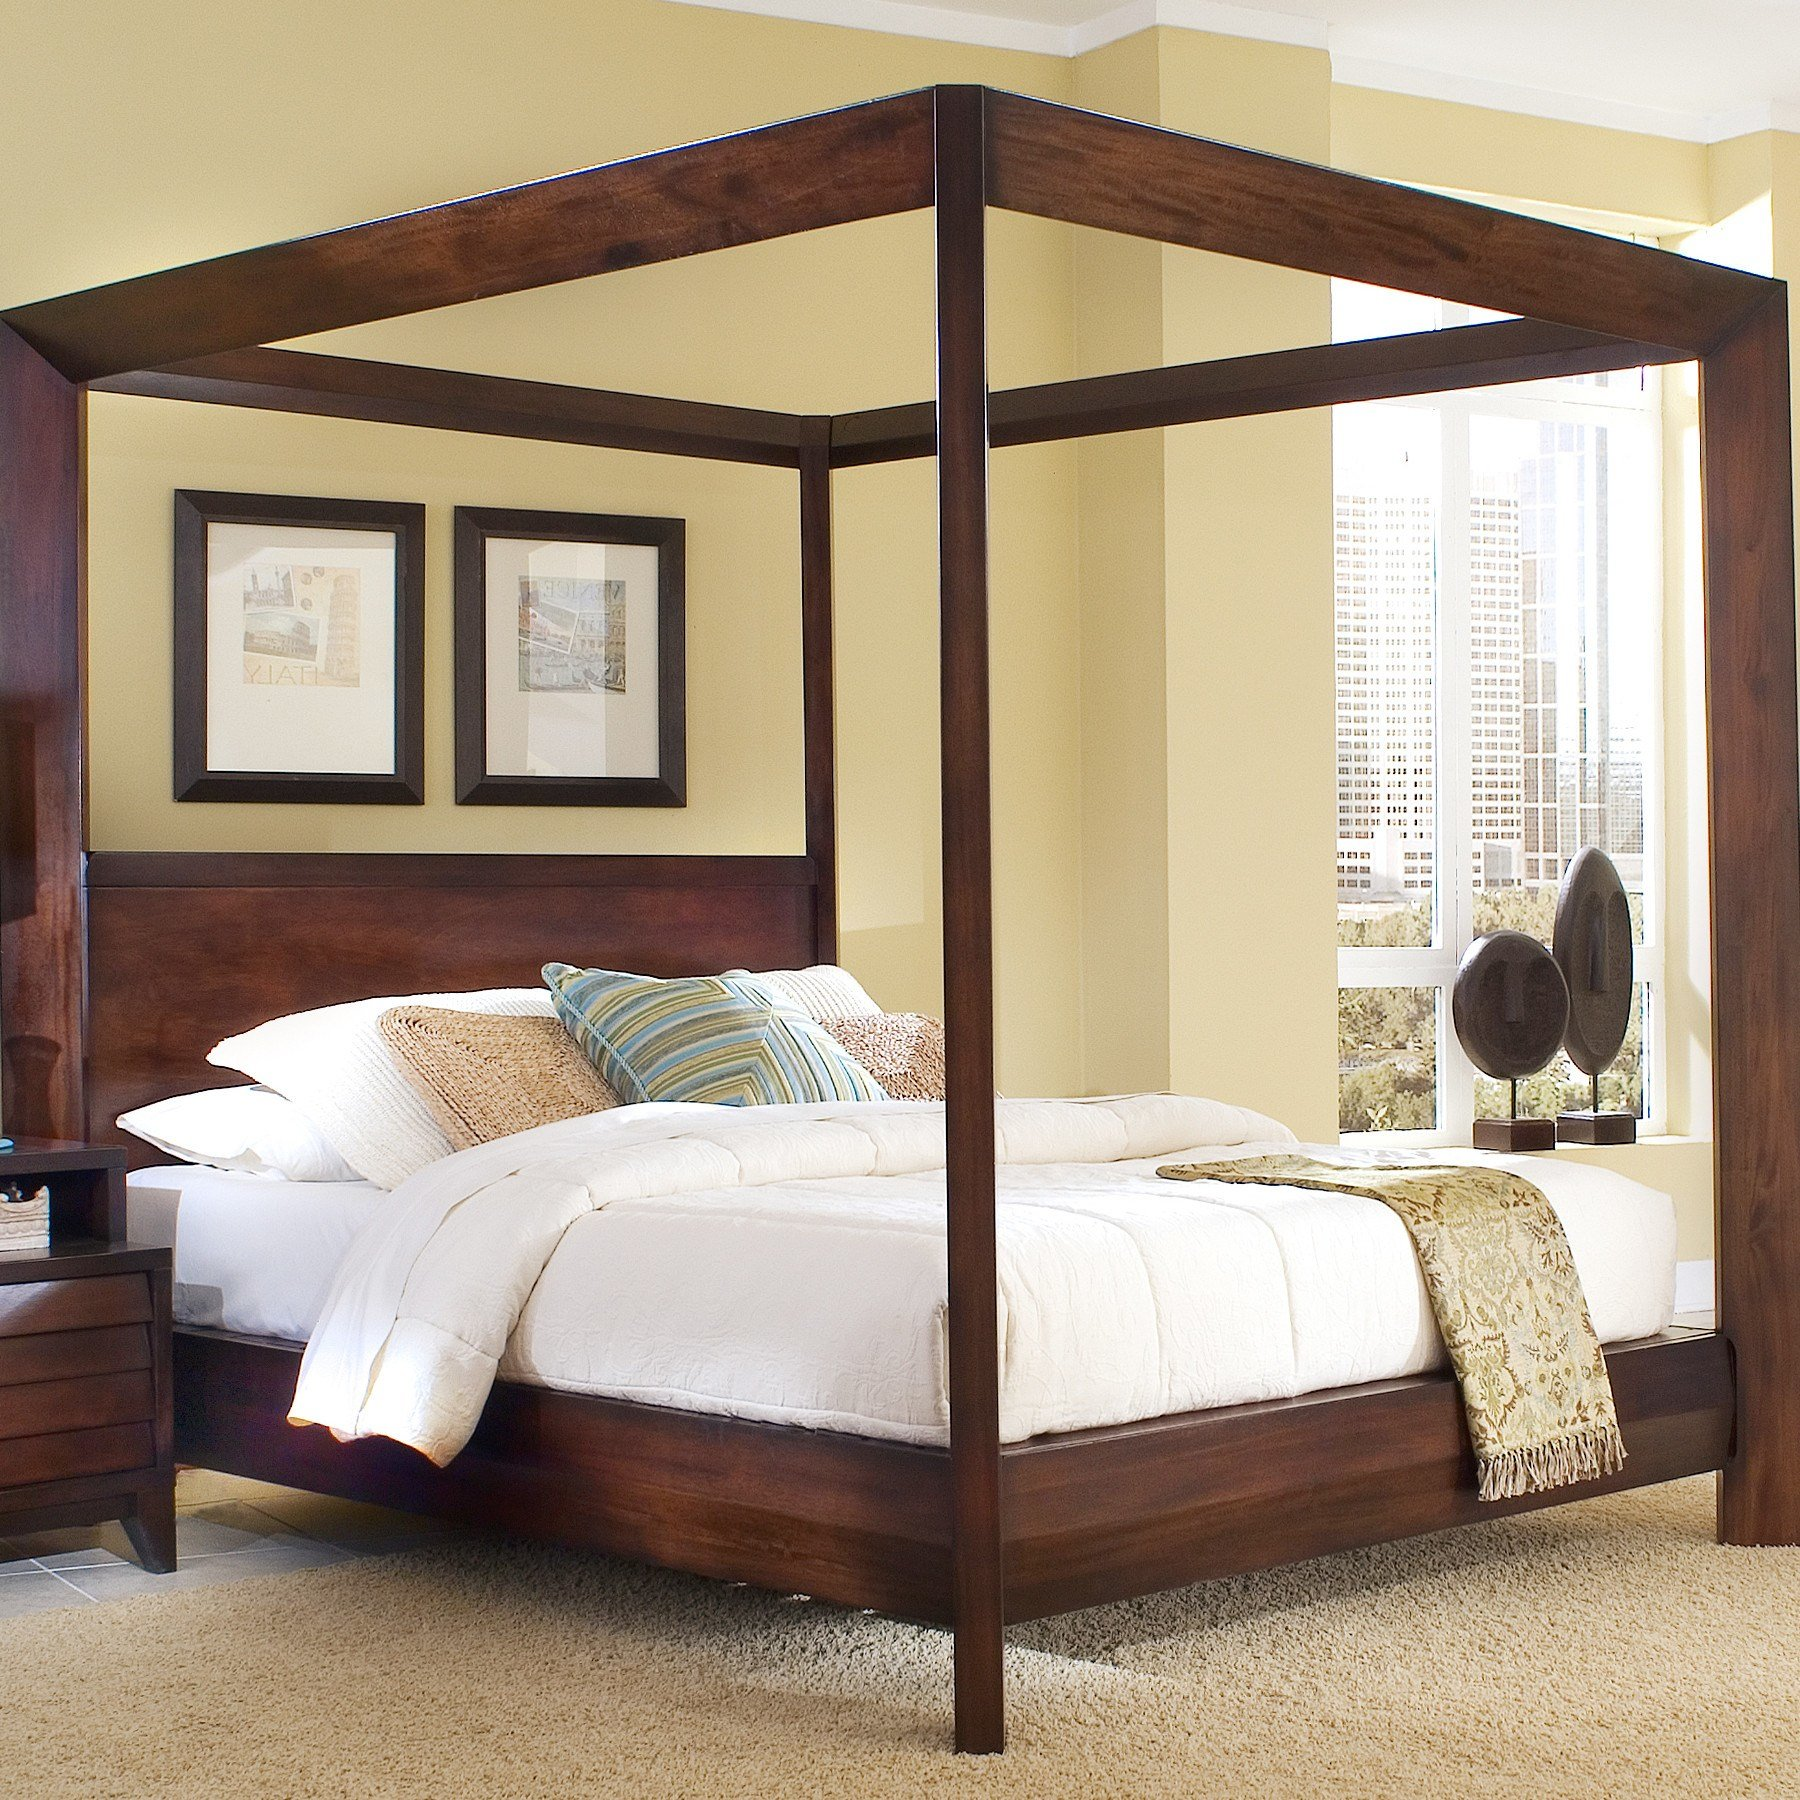 Best Home Image Island Canopy Customizable Bedroom Set With Pictures